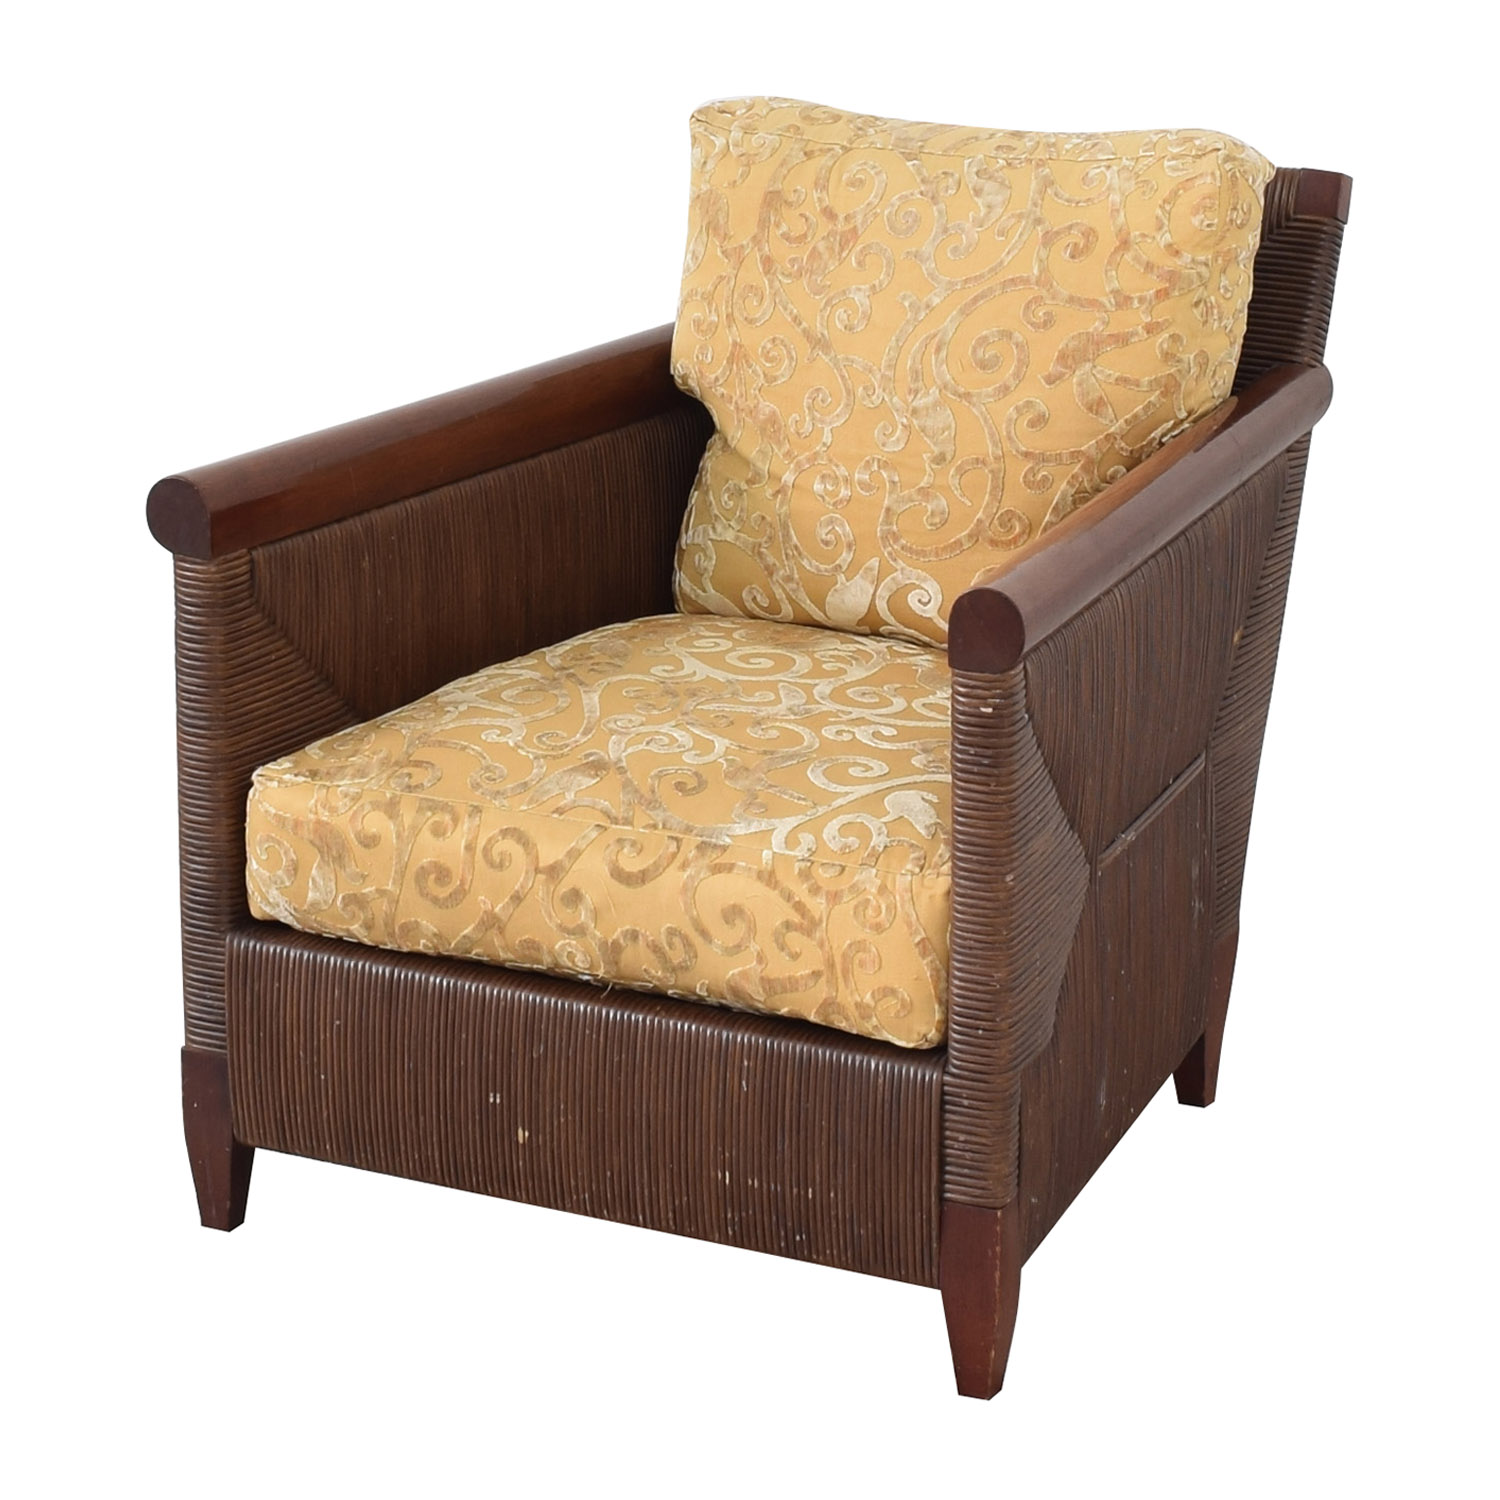 Donghia by John Hutton Mahogany and Wicker Lounger / Accent Chairs